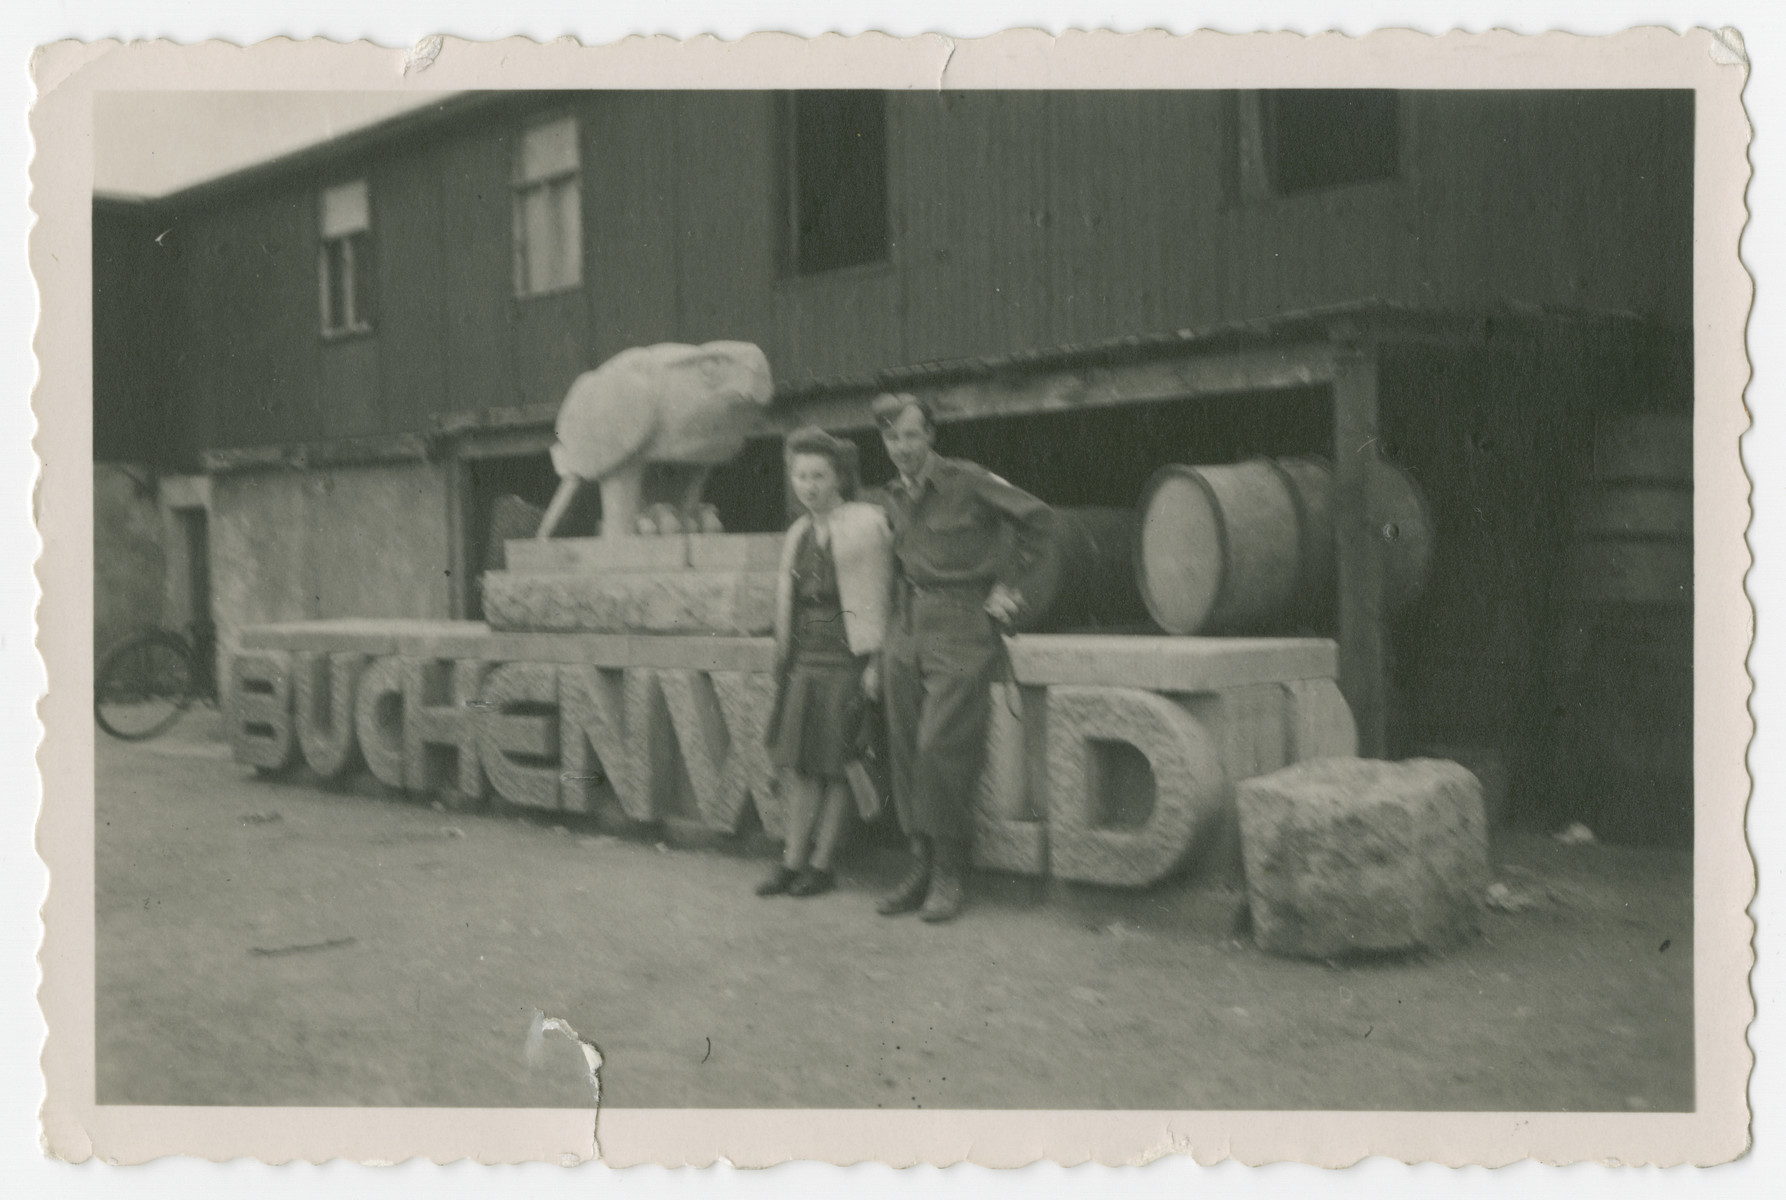 """A soldier and a young woman stand in front of the Buchenwald Concentration Camp's entrance sign after the camp was liberated.  The photograph's orginal caption reads, """"These are not my own snap shots, Honey and they are a part of Usn's only because I have set foot on all terra firma in these snaps. This is Buchenwald - the crude entrance - huh?"""""""